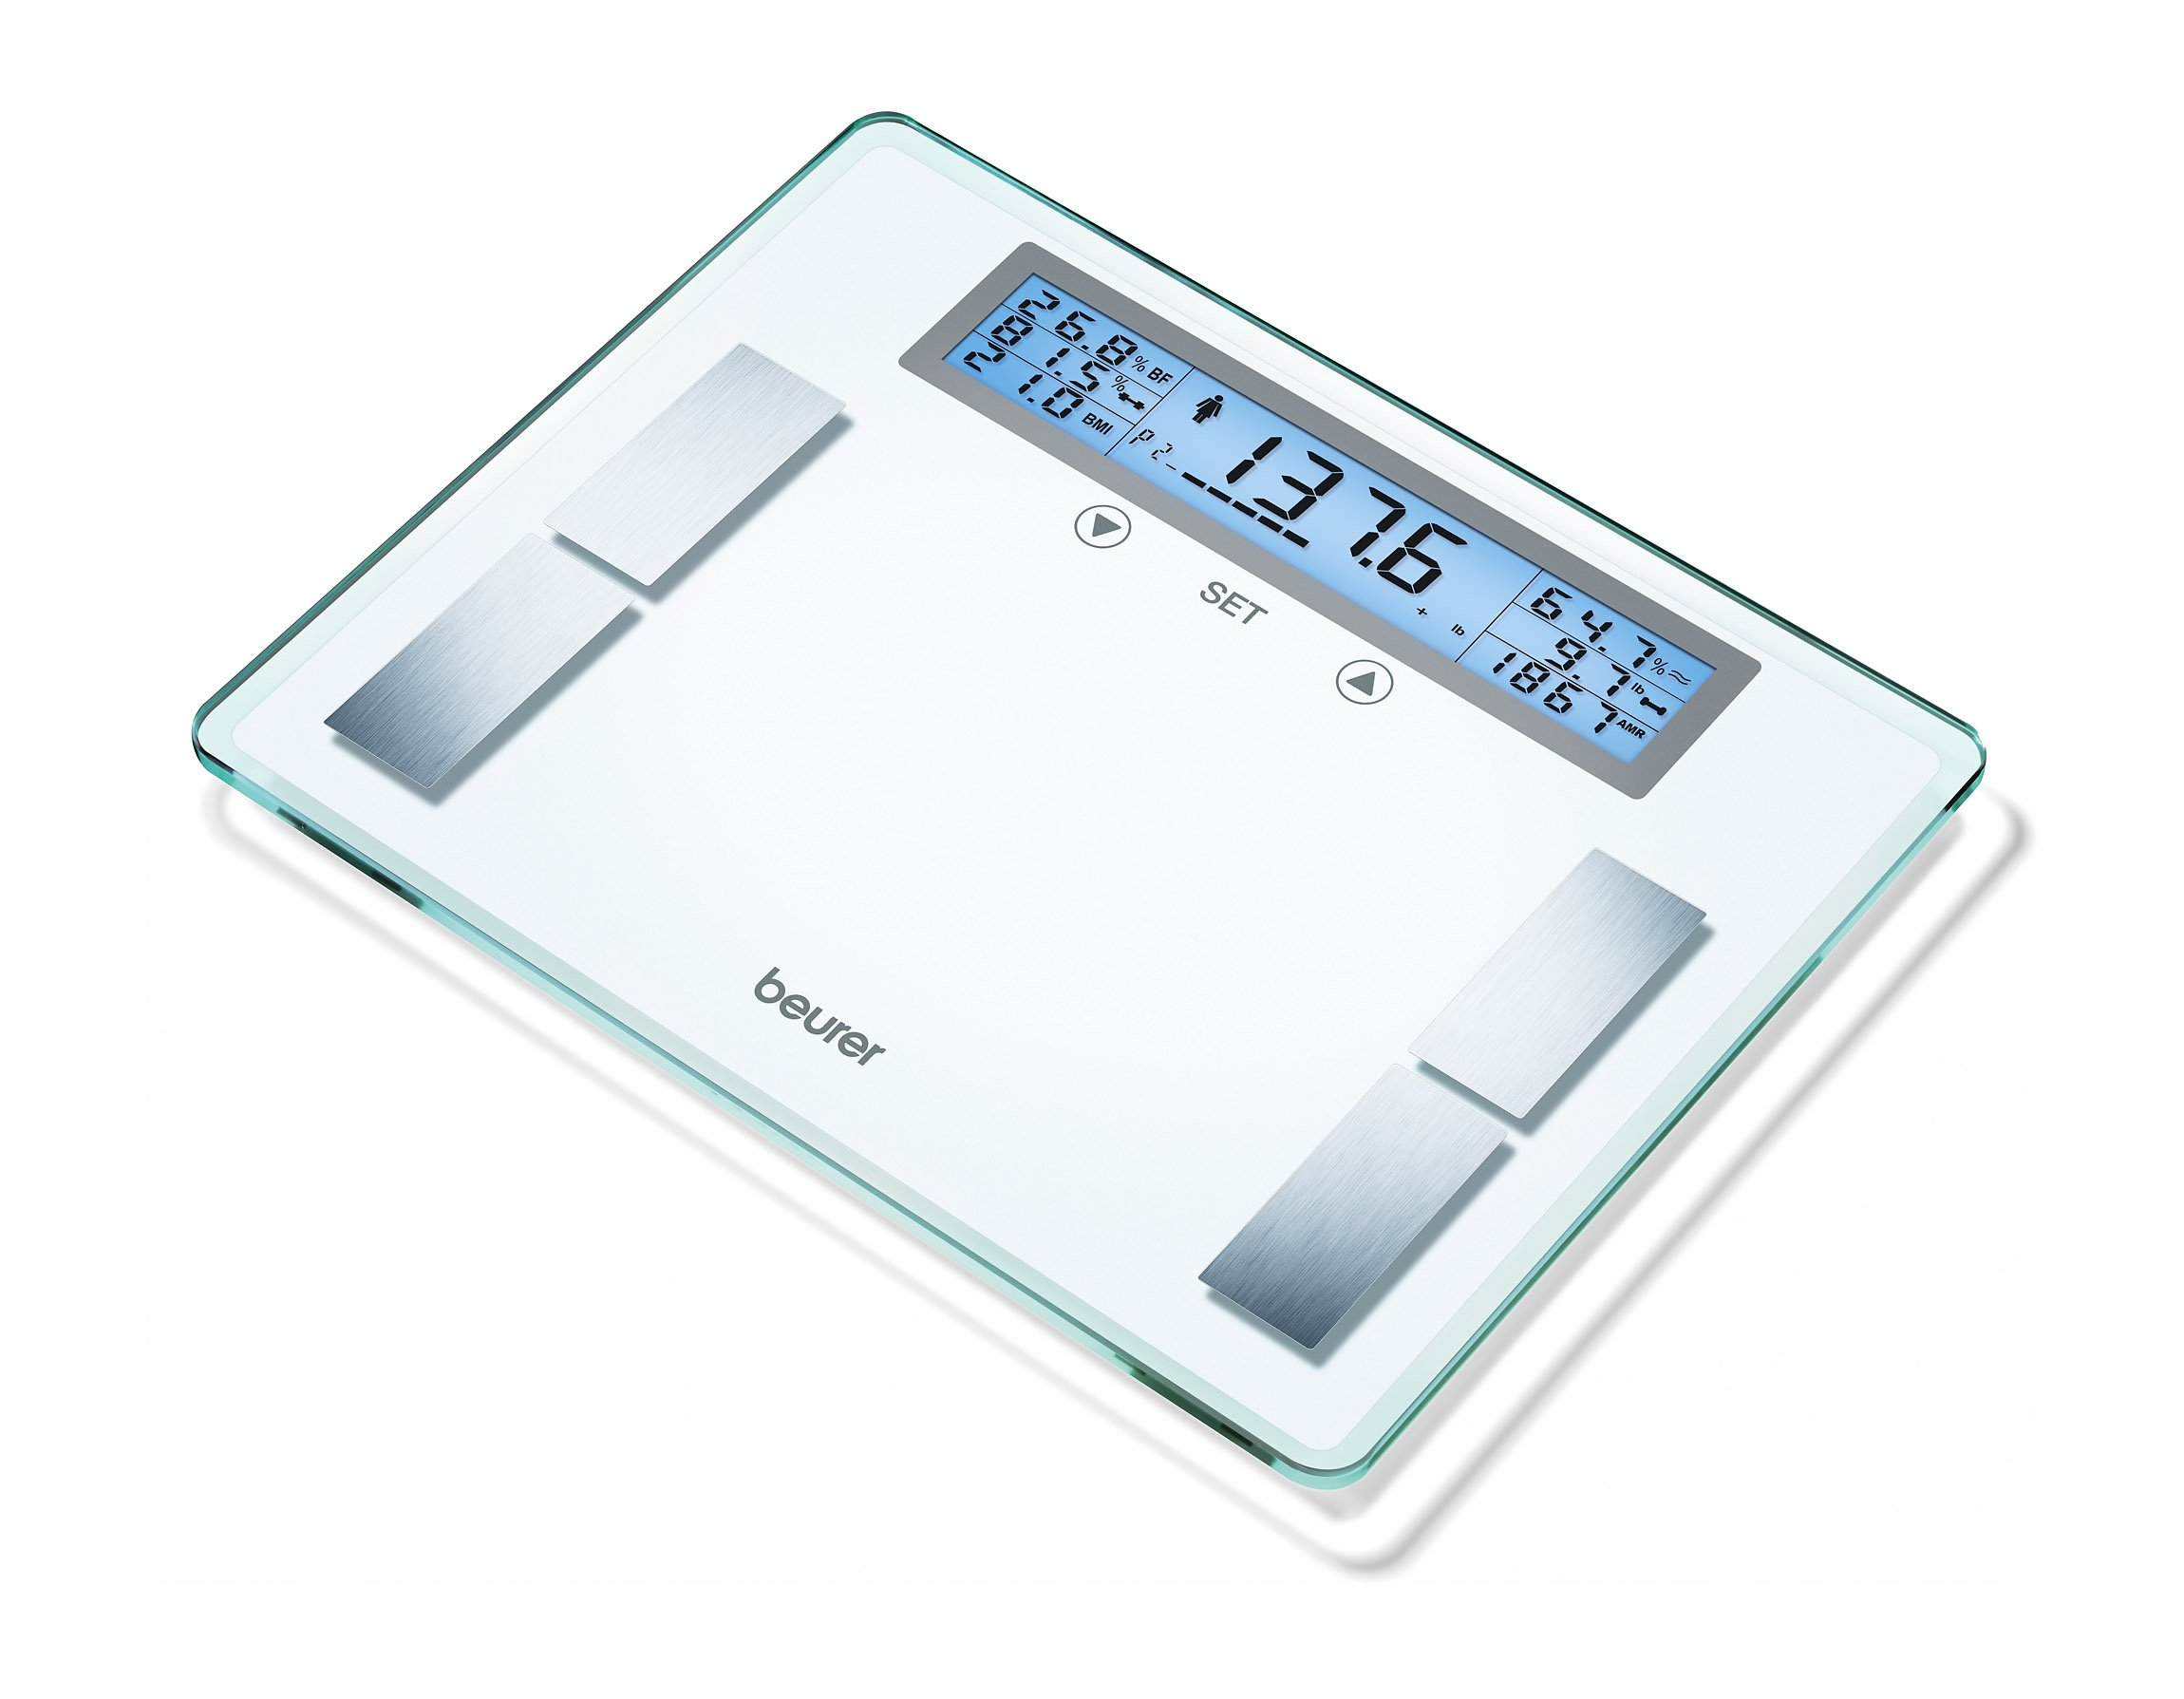 Beurer Body Analyzer Scale XXL Extra Wide Platform & LCD Illuminated Display, Multi-User Weight Management Scale Calculates BMI, Heavy Duty, BF520 by Beurer